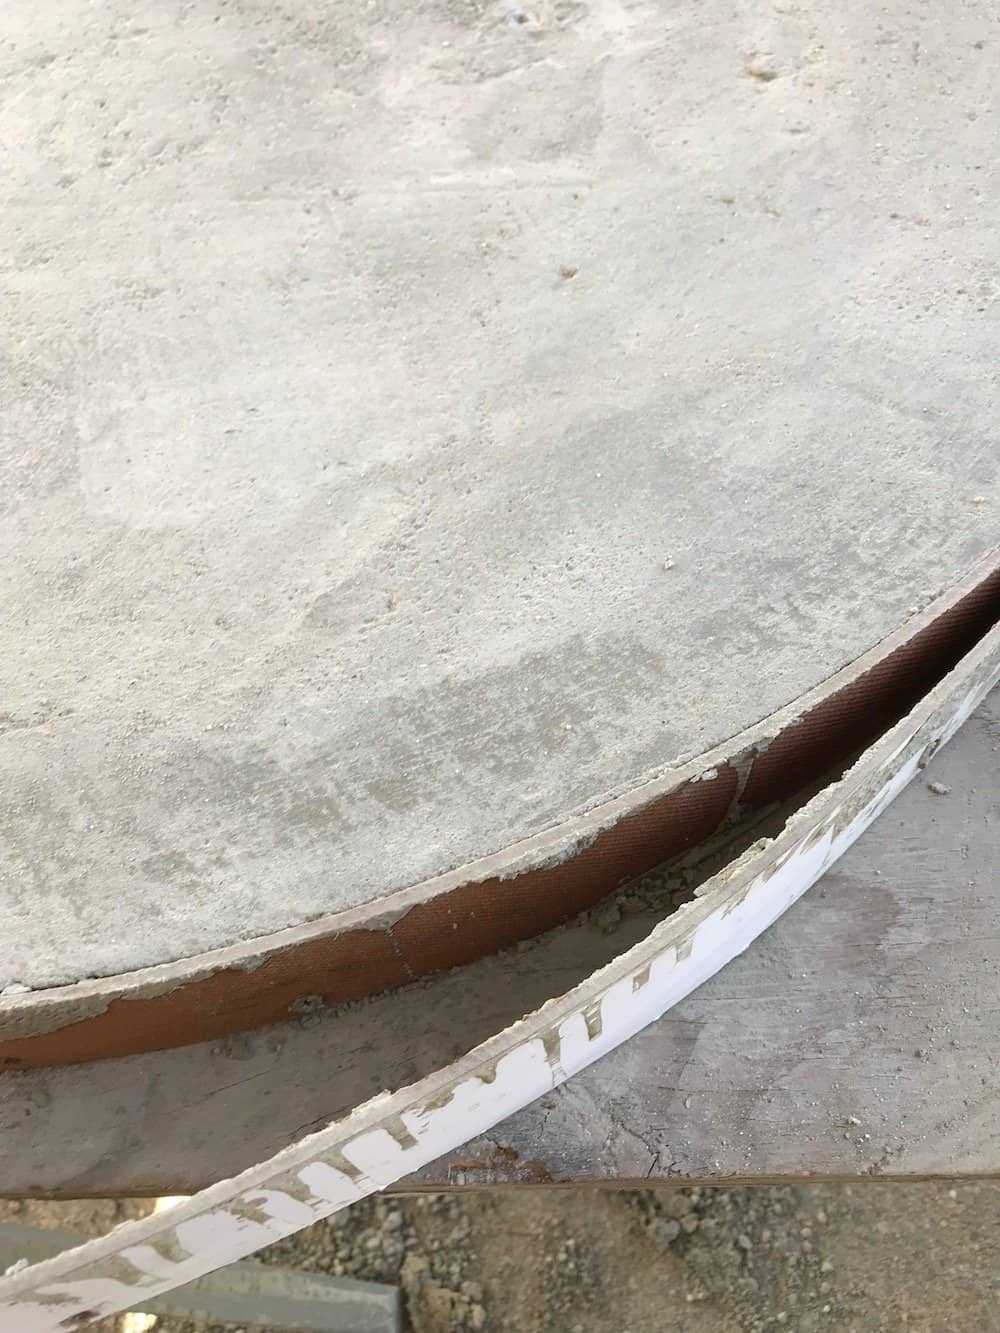 Removing form from concrete furniture